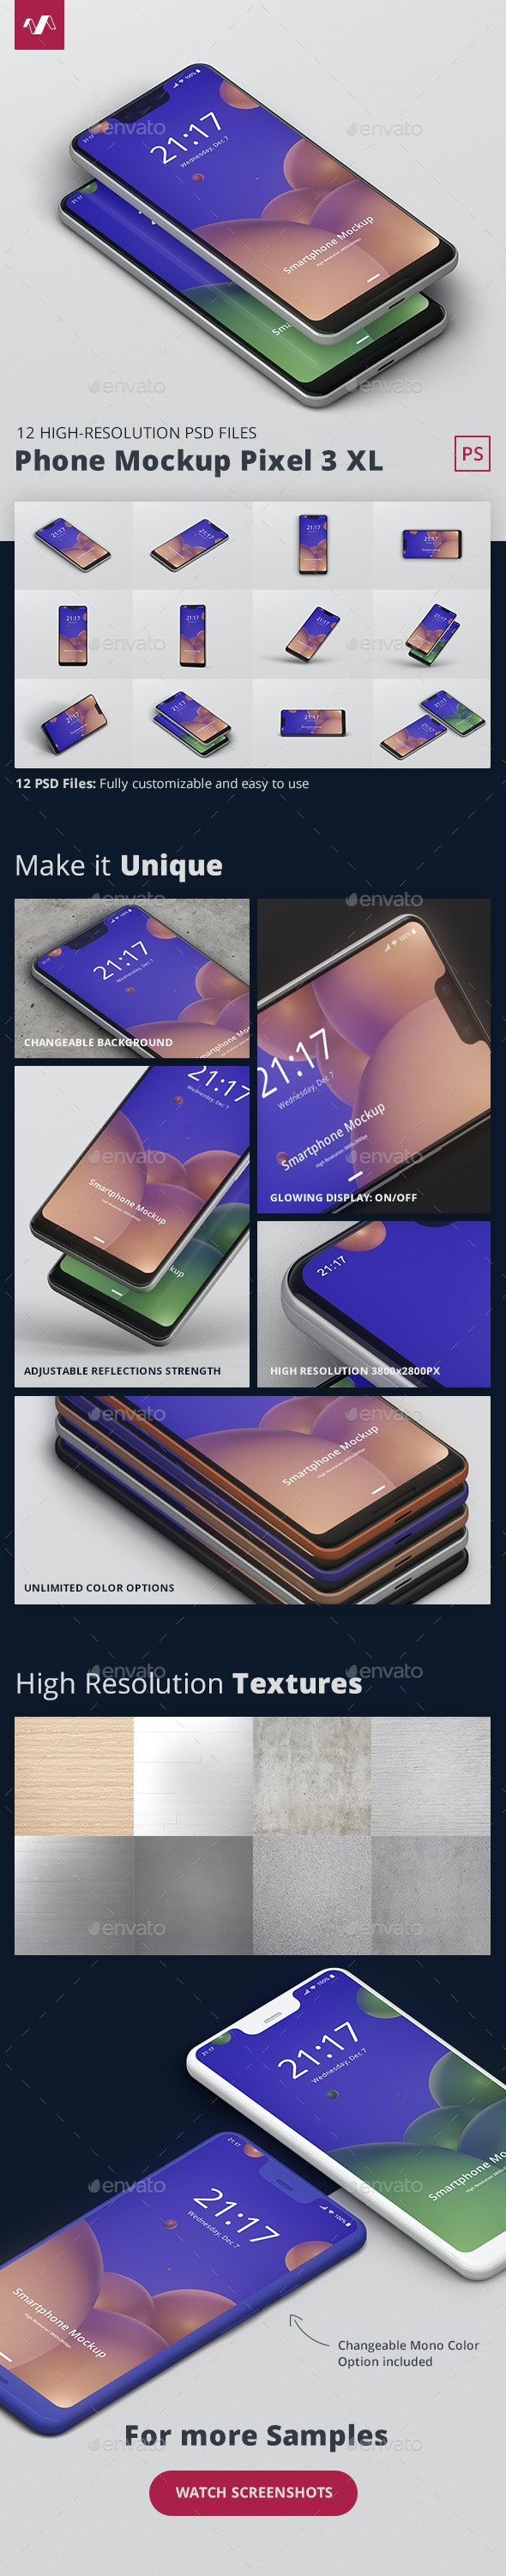 Smart Phone Mockup Pixel 3 XL - Mobile Displays